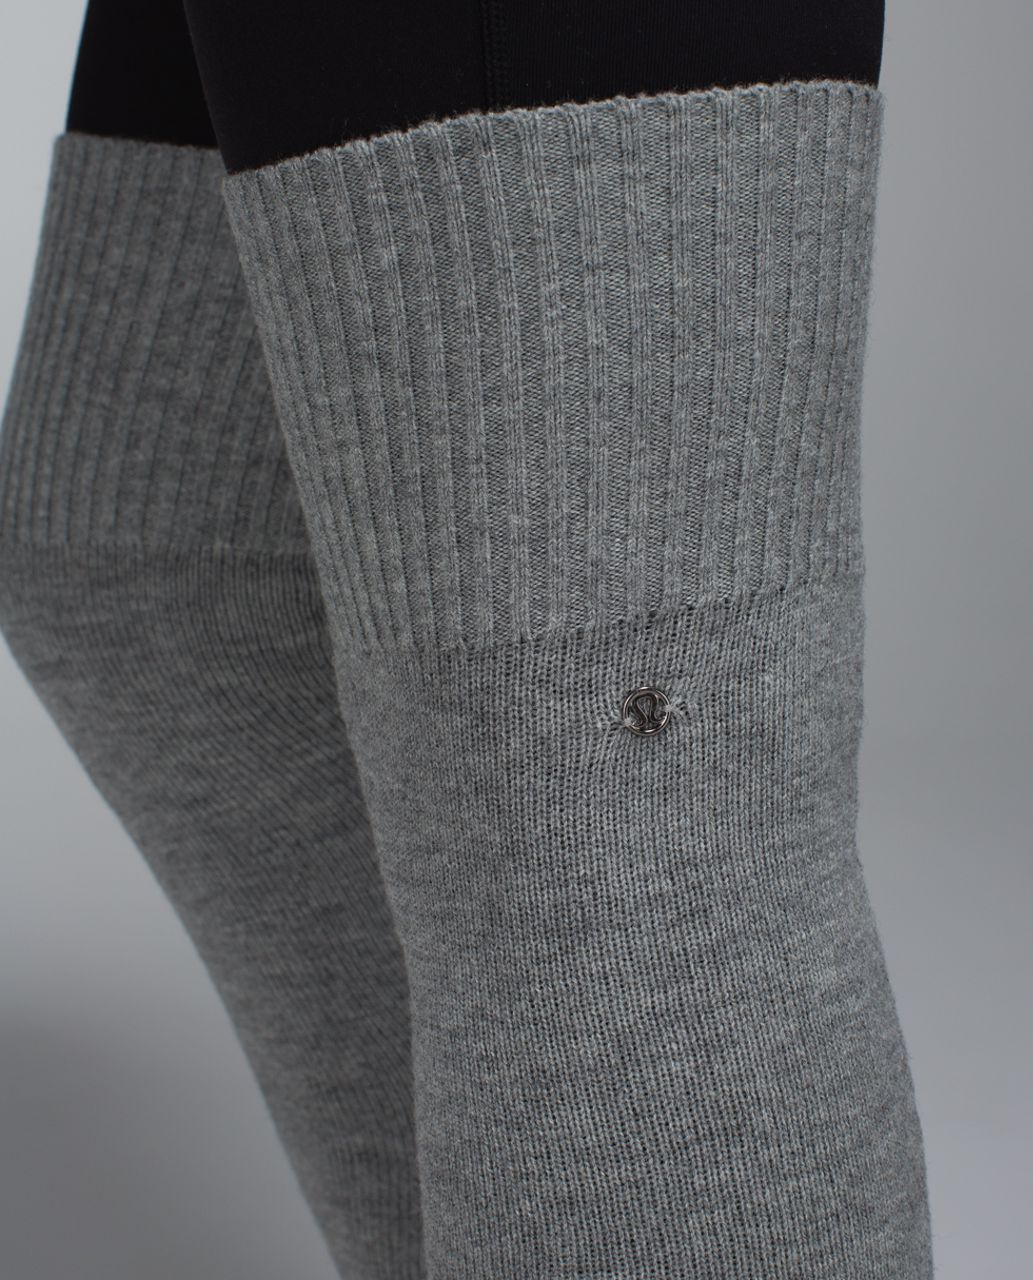 Lululemon Evolution Leg Warmers - Heathered Medium Grey / Almost Pear